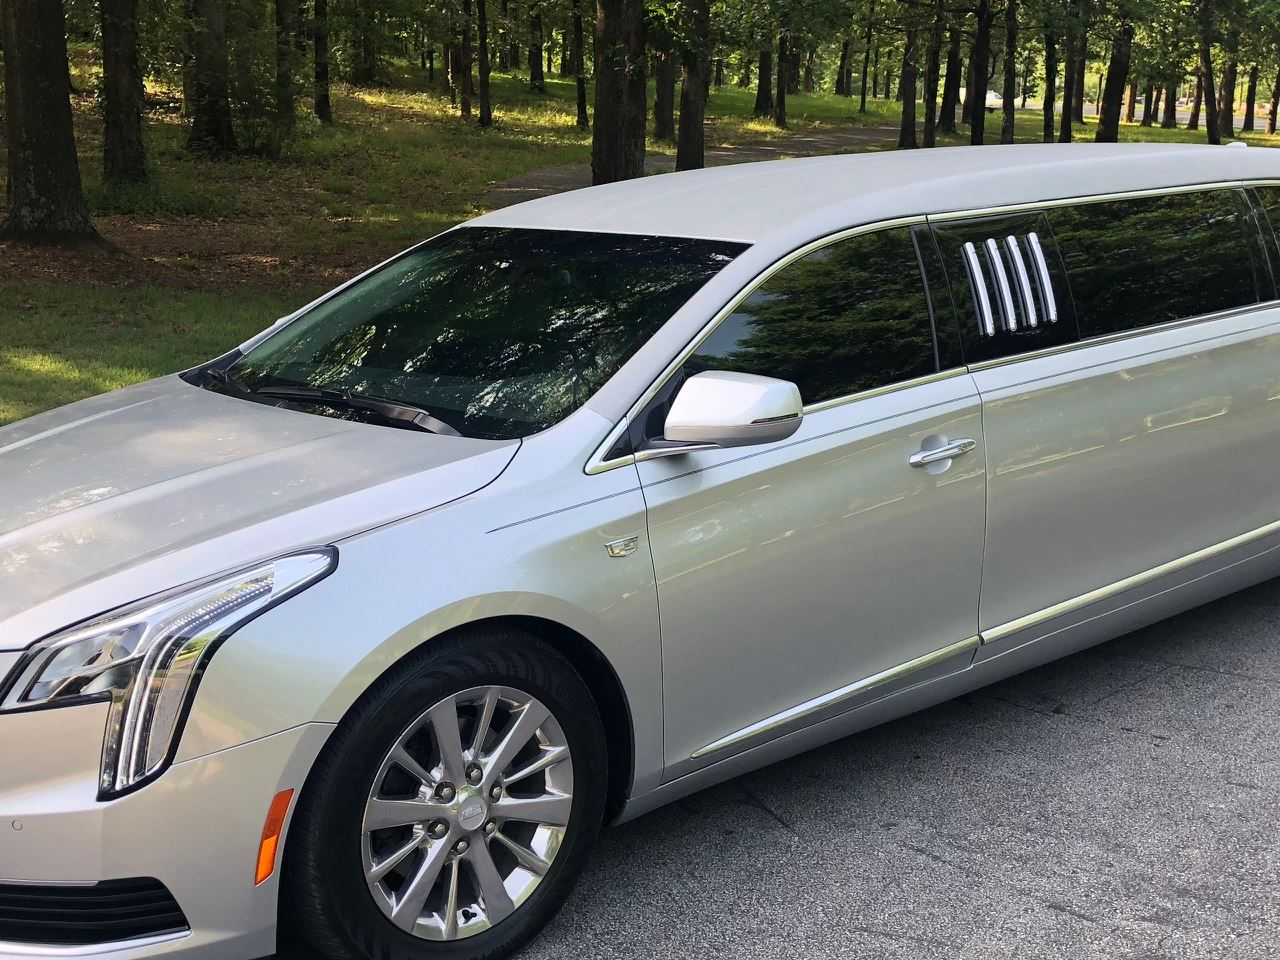 2019 Armbruster Stageway Cadillac 70 Stretch Limousine 3